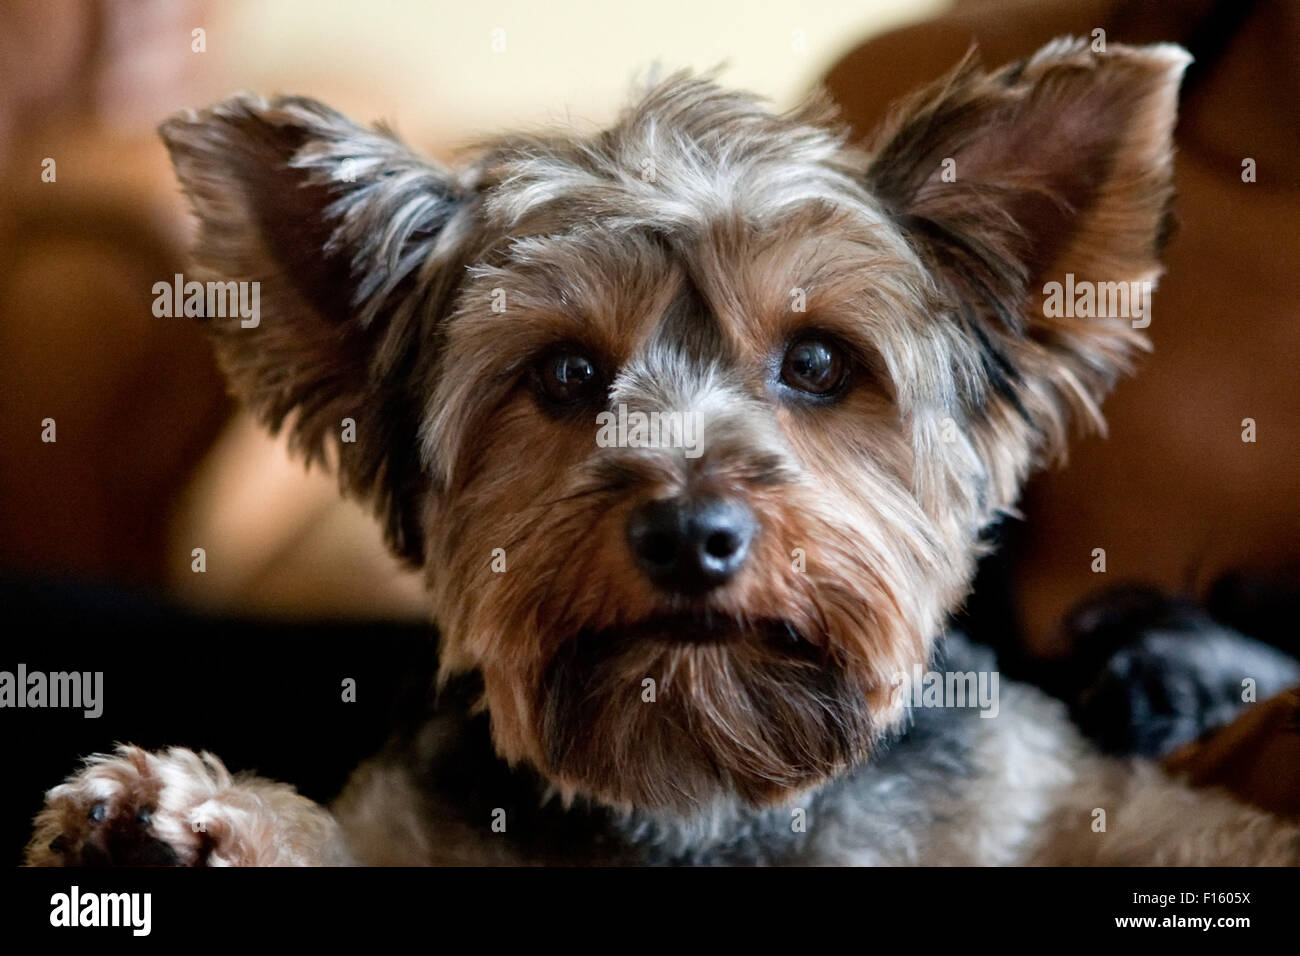 Close Up Headshot Of Adorable Yorkie Dog Terrier With Fresh Hair Cut